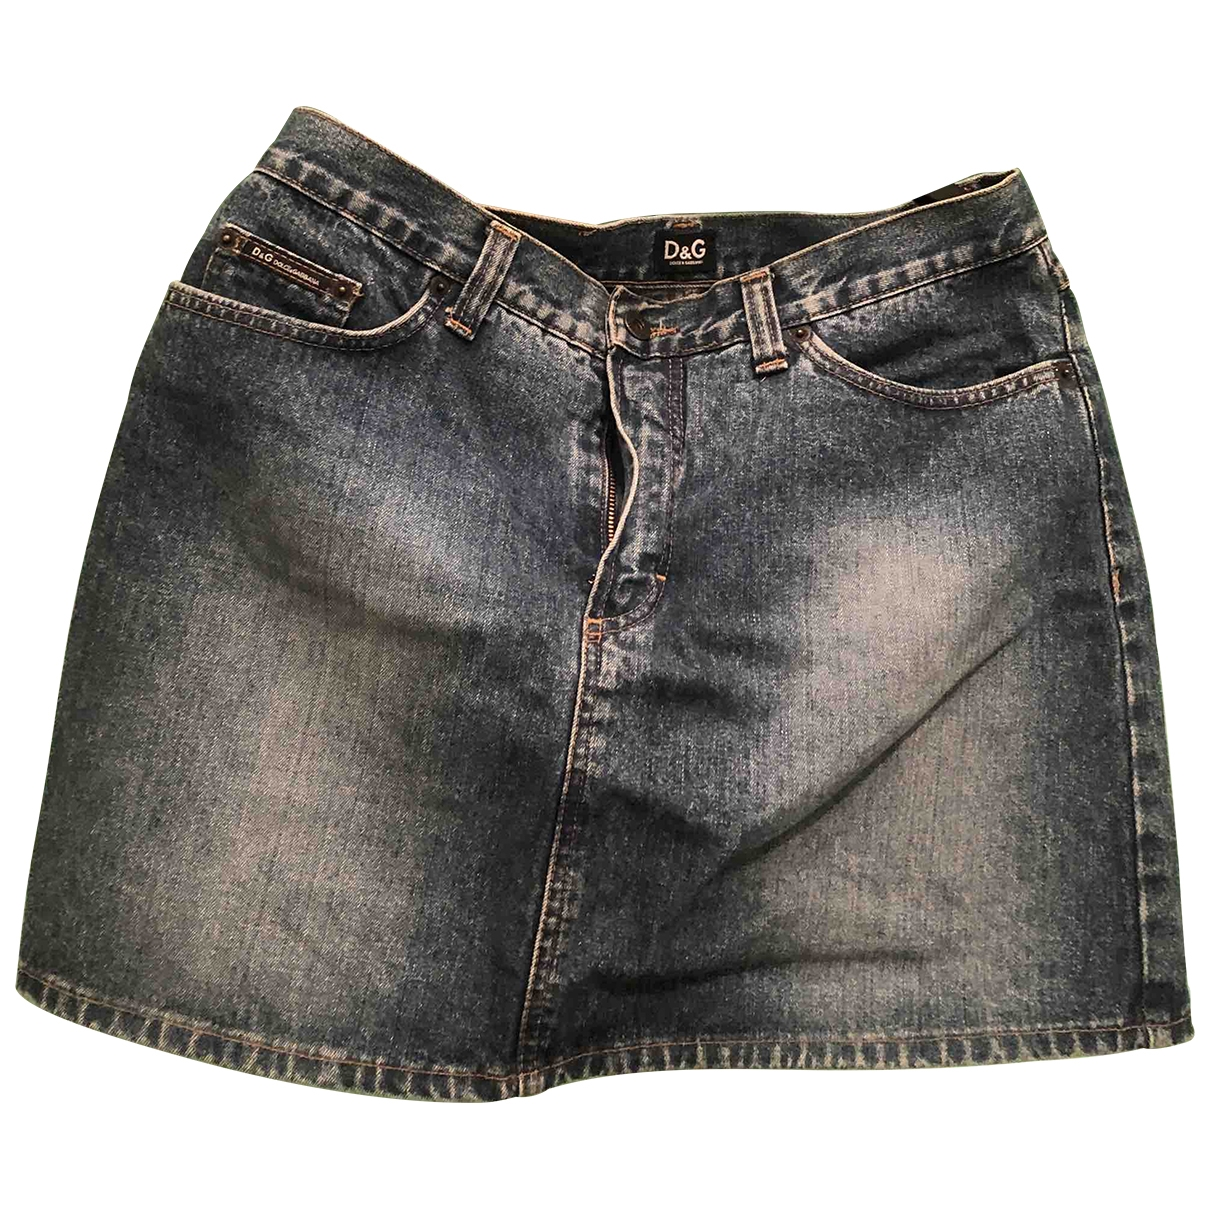 D&g \N Blue Denim - Jeans skirt for Women 44 FR